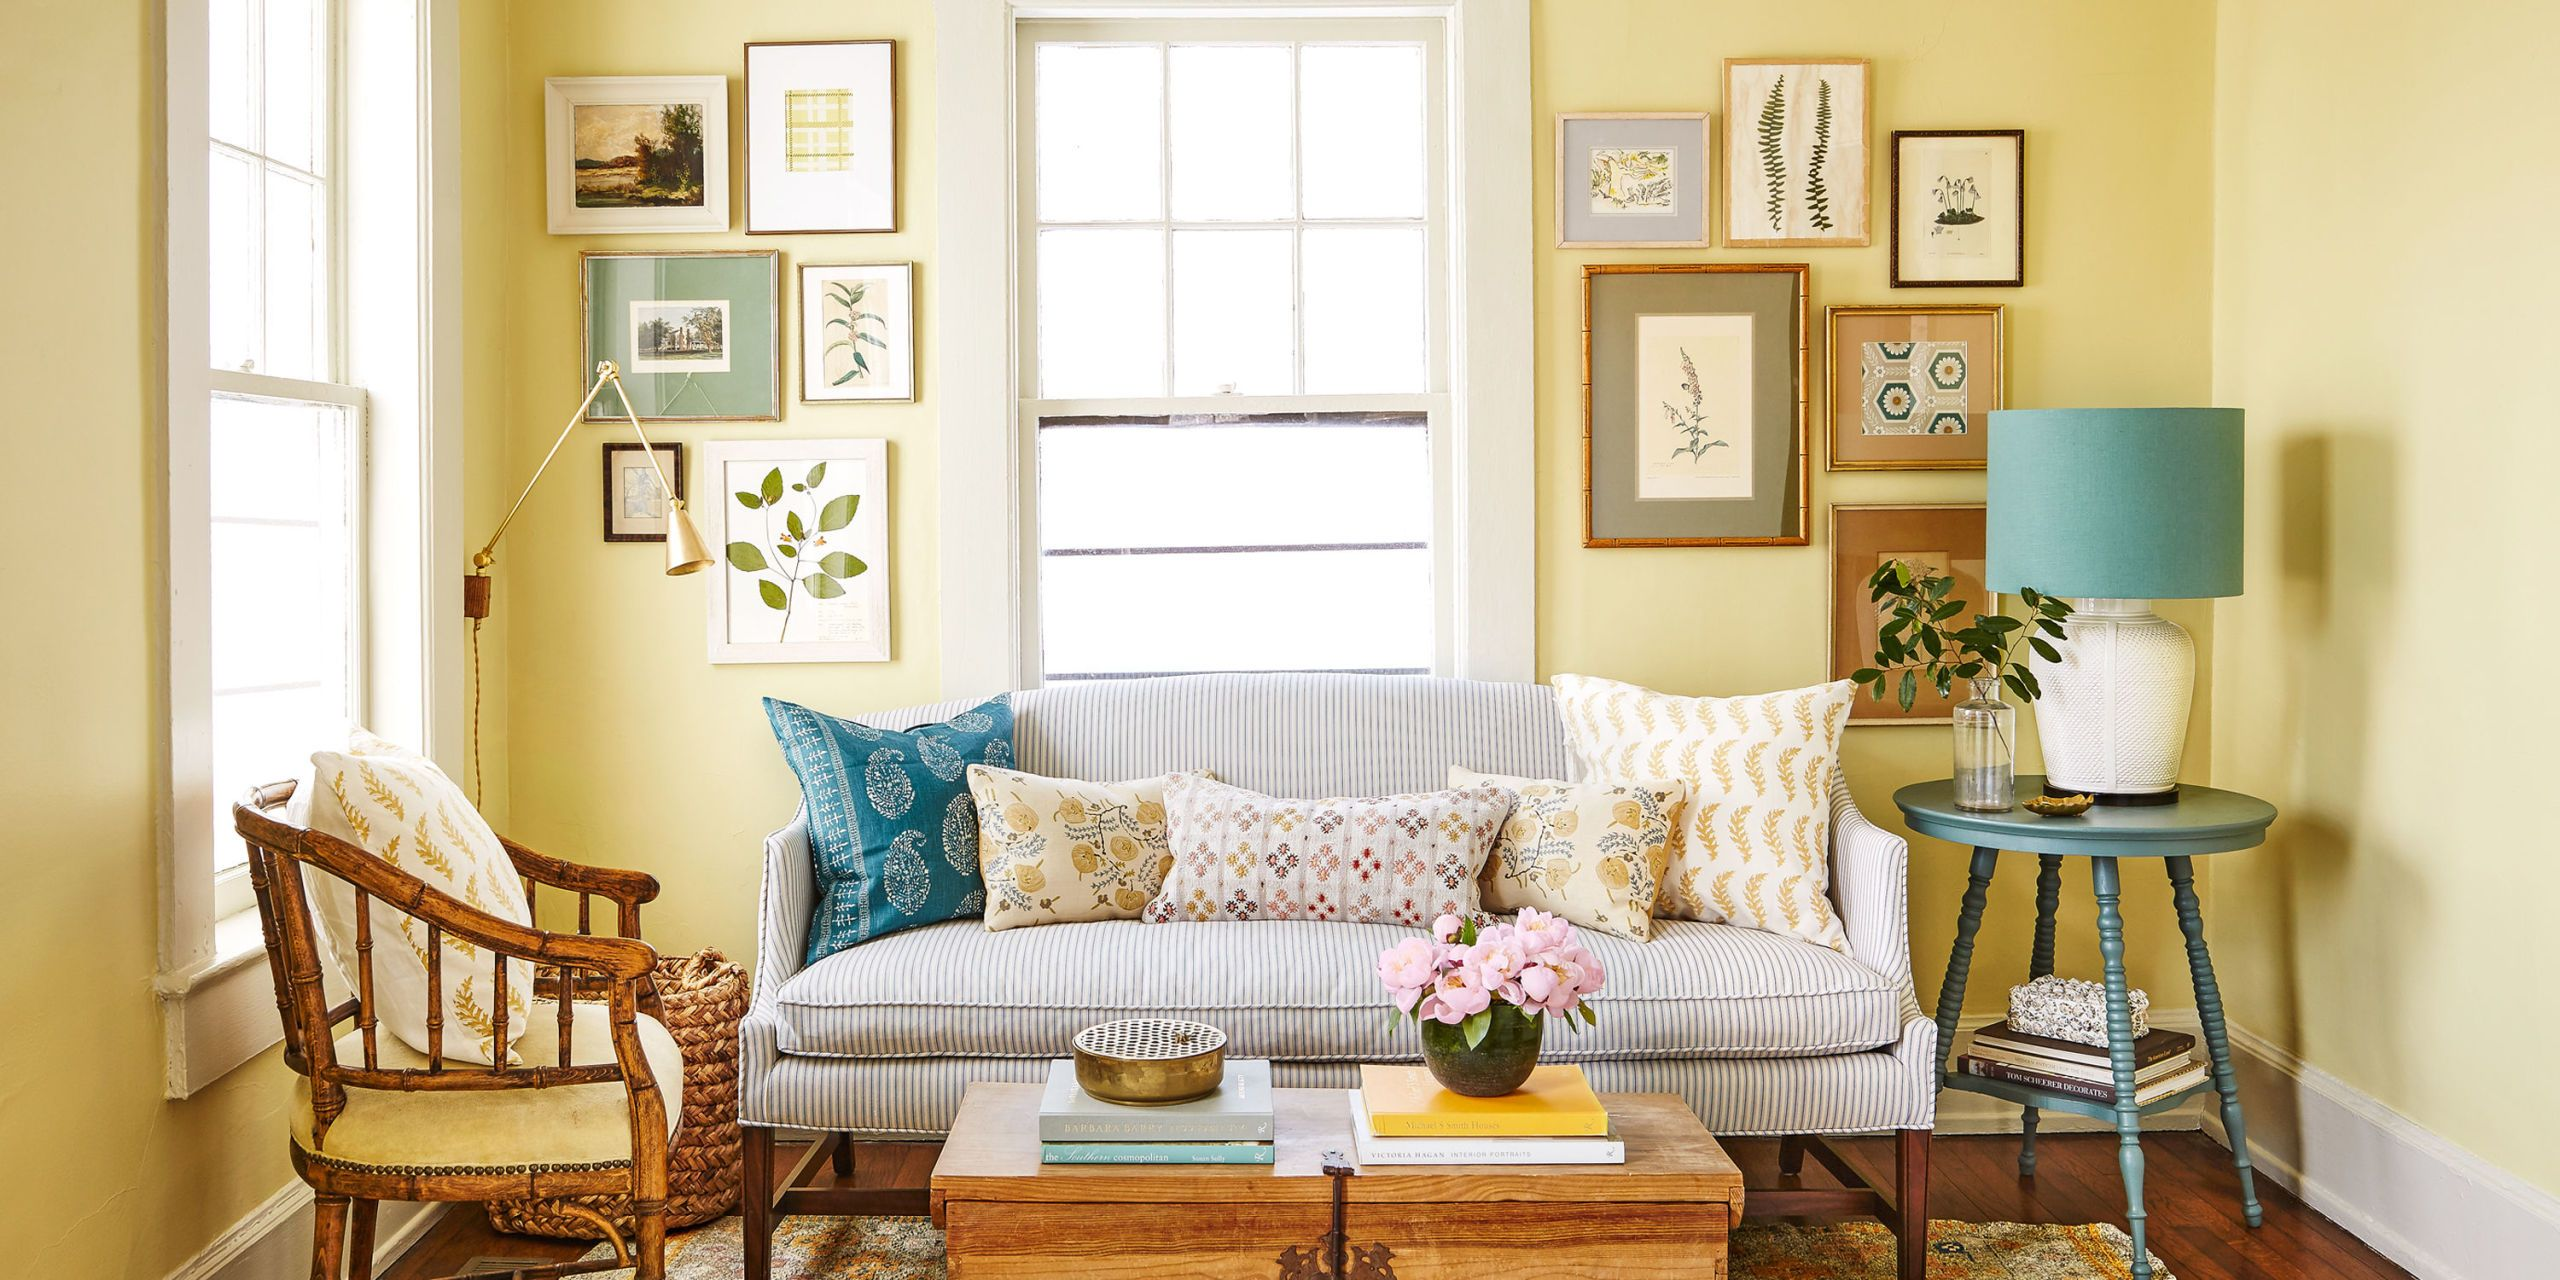 Wonderful Ideas For Living Room Decorations Plans Free